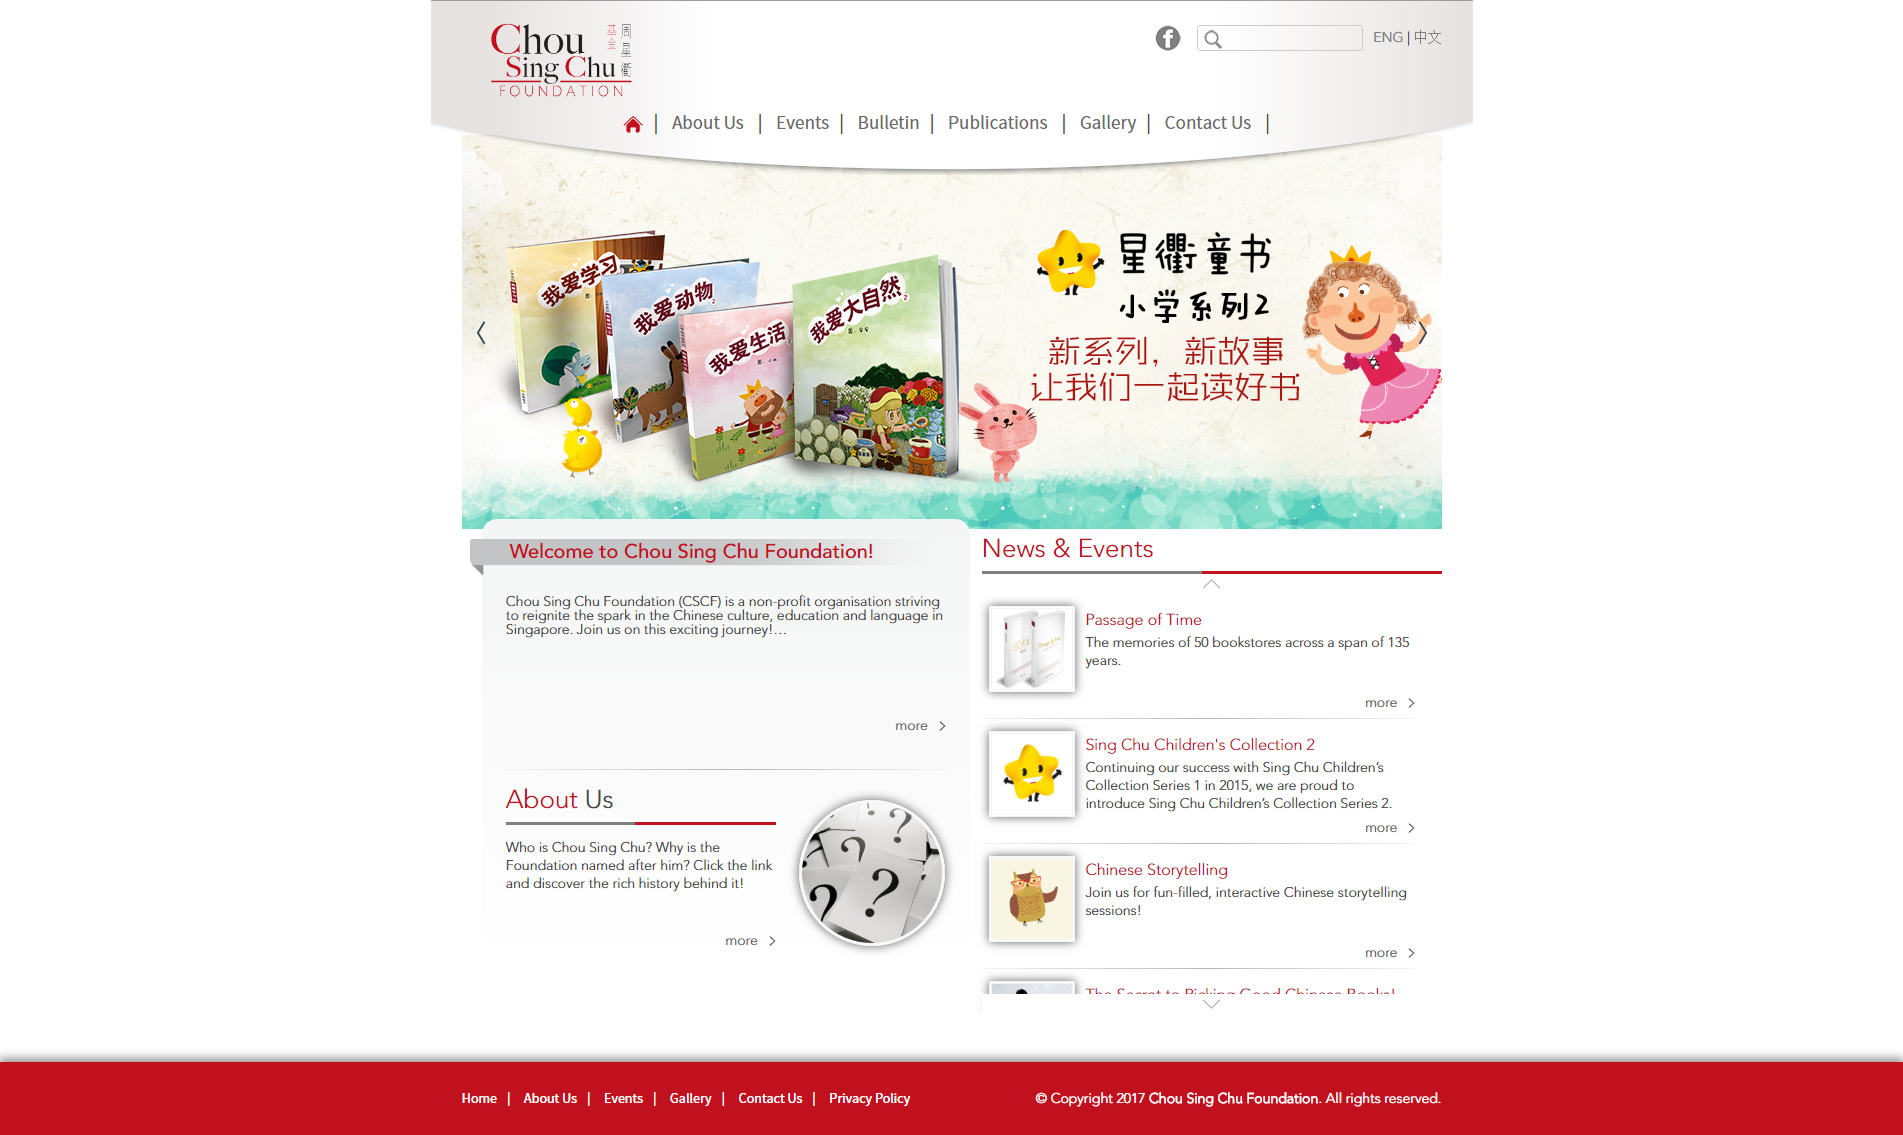 Chou Sing Chu Foundation 周星衢基金igniting Chinese culture education and language